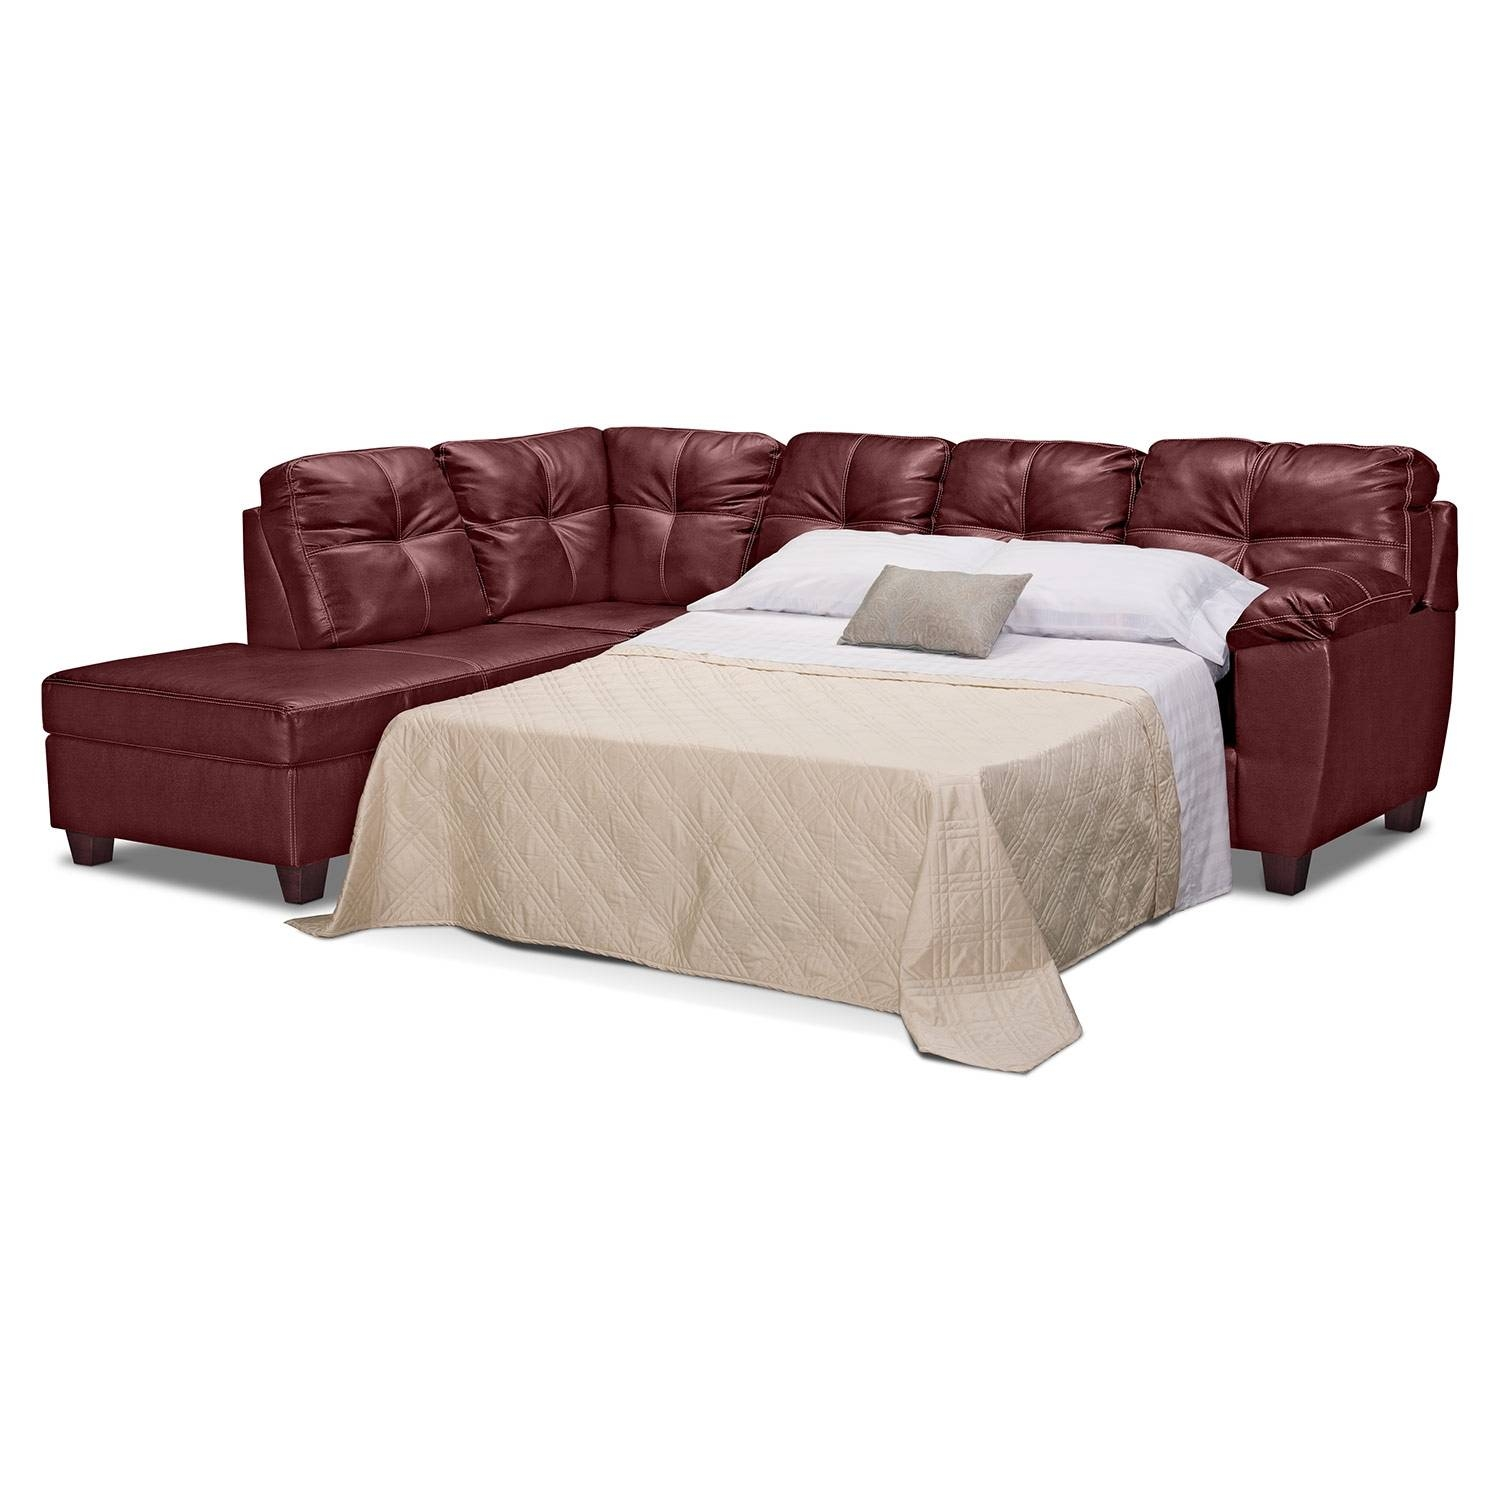 Wonderful Sectional Sofas With Sleeper Bed 52 In 3 Piece Sectional within 3 Piece Sectional Sleeper Sofa (Image 30 of 30)